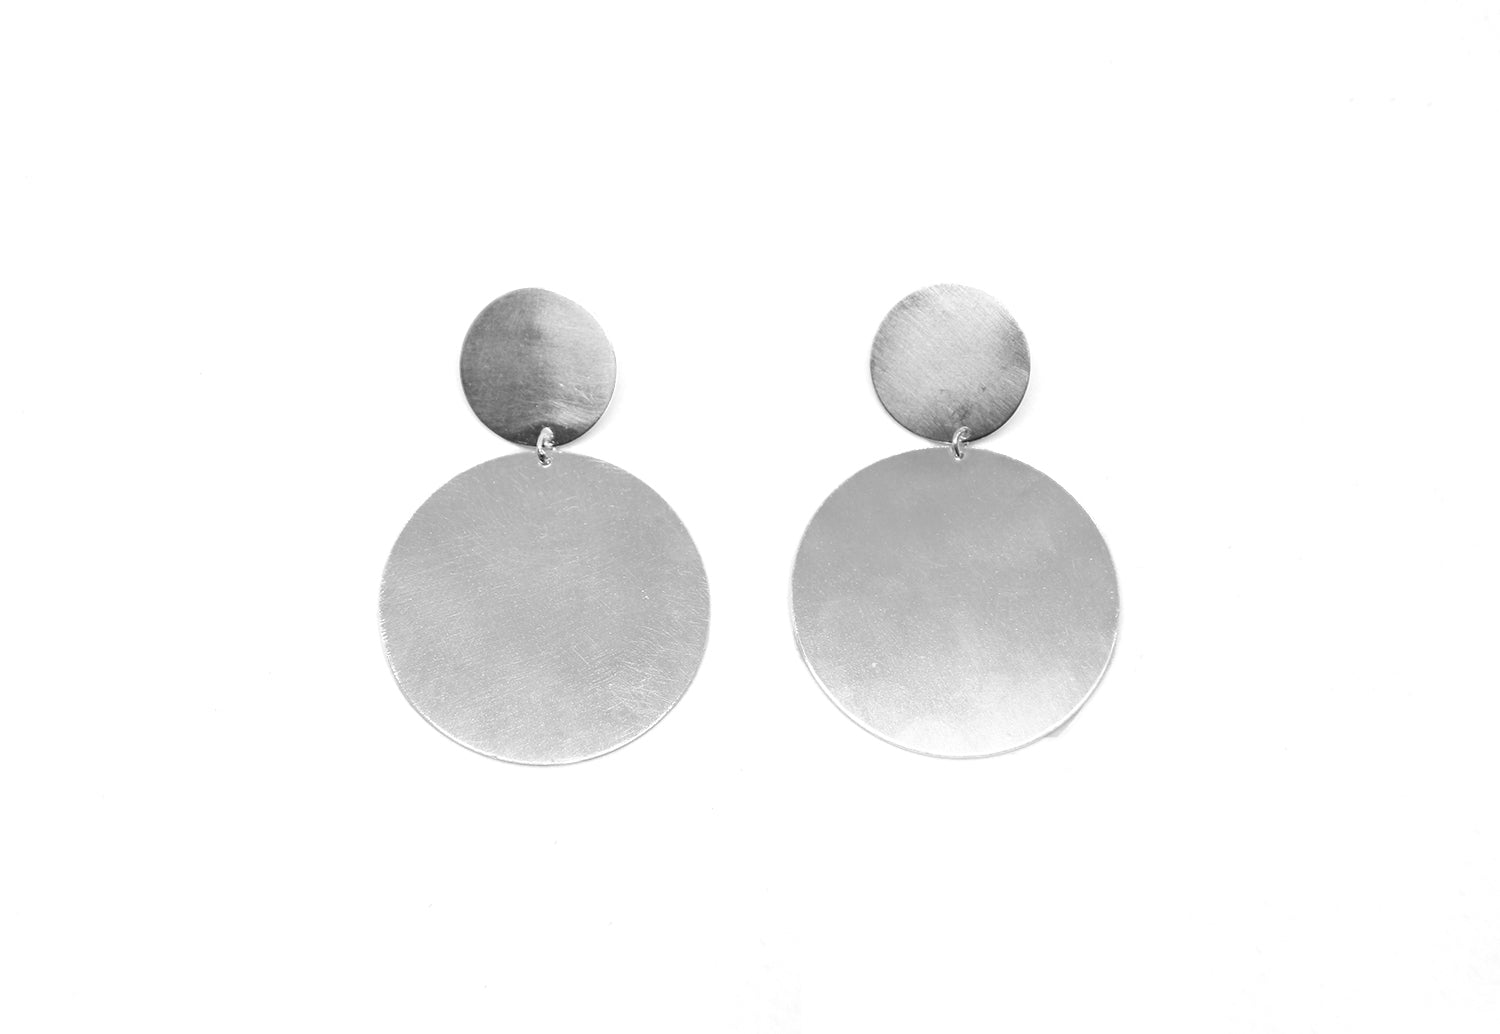 llayers jewelry dangly silver circles earrings gravity boucles d'oreilles pendantes cercles argent